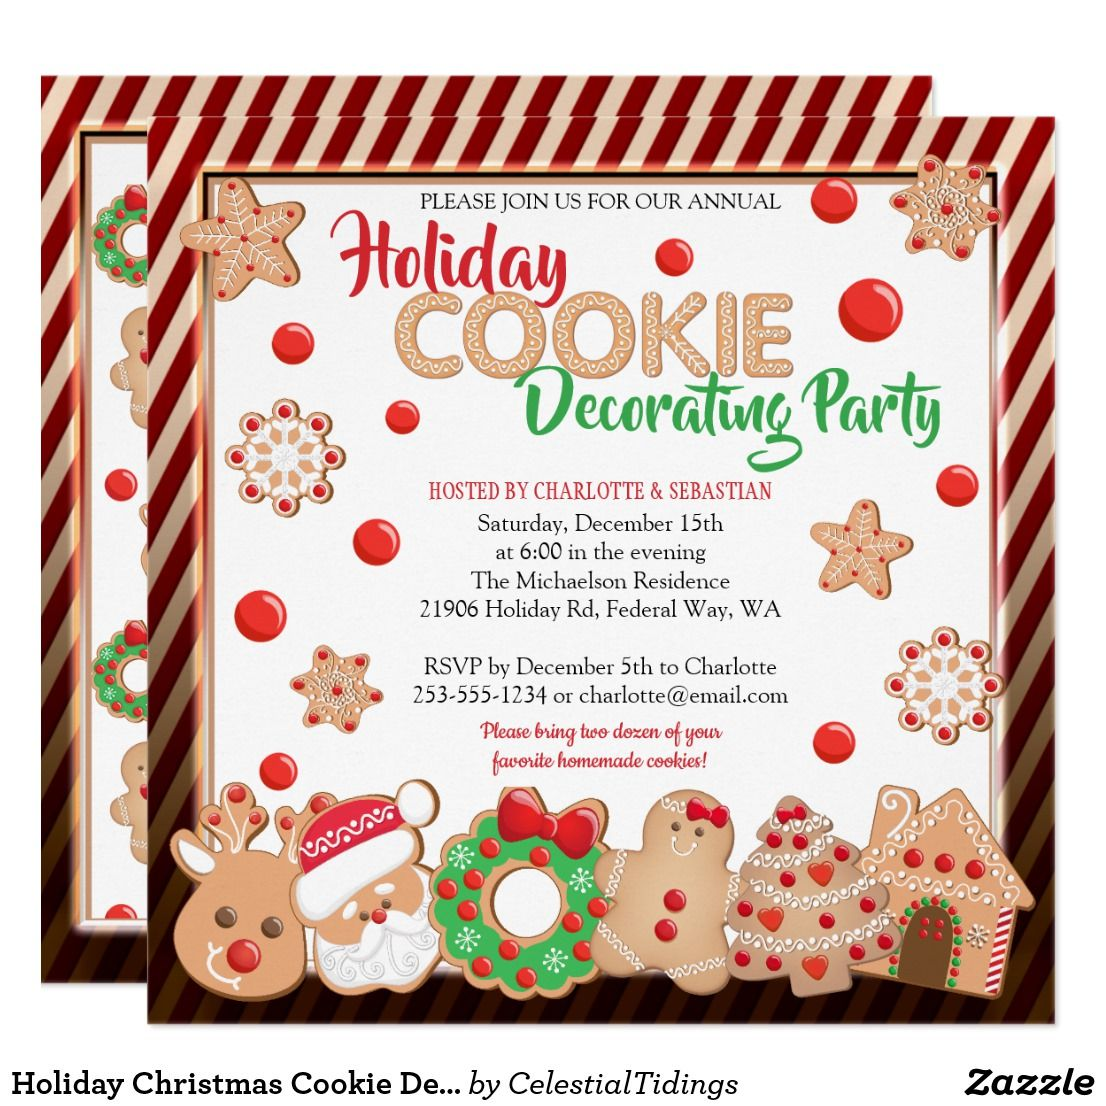 Holiday Christmas Cookie Decorating Party Invitation | Christmas ...